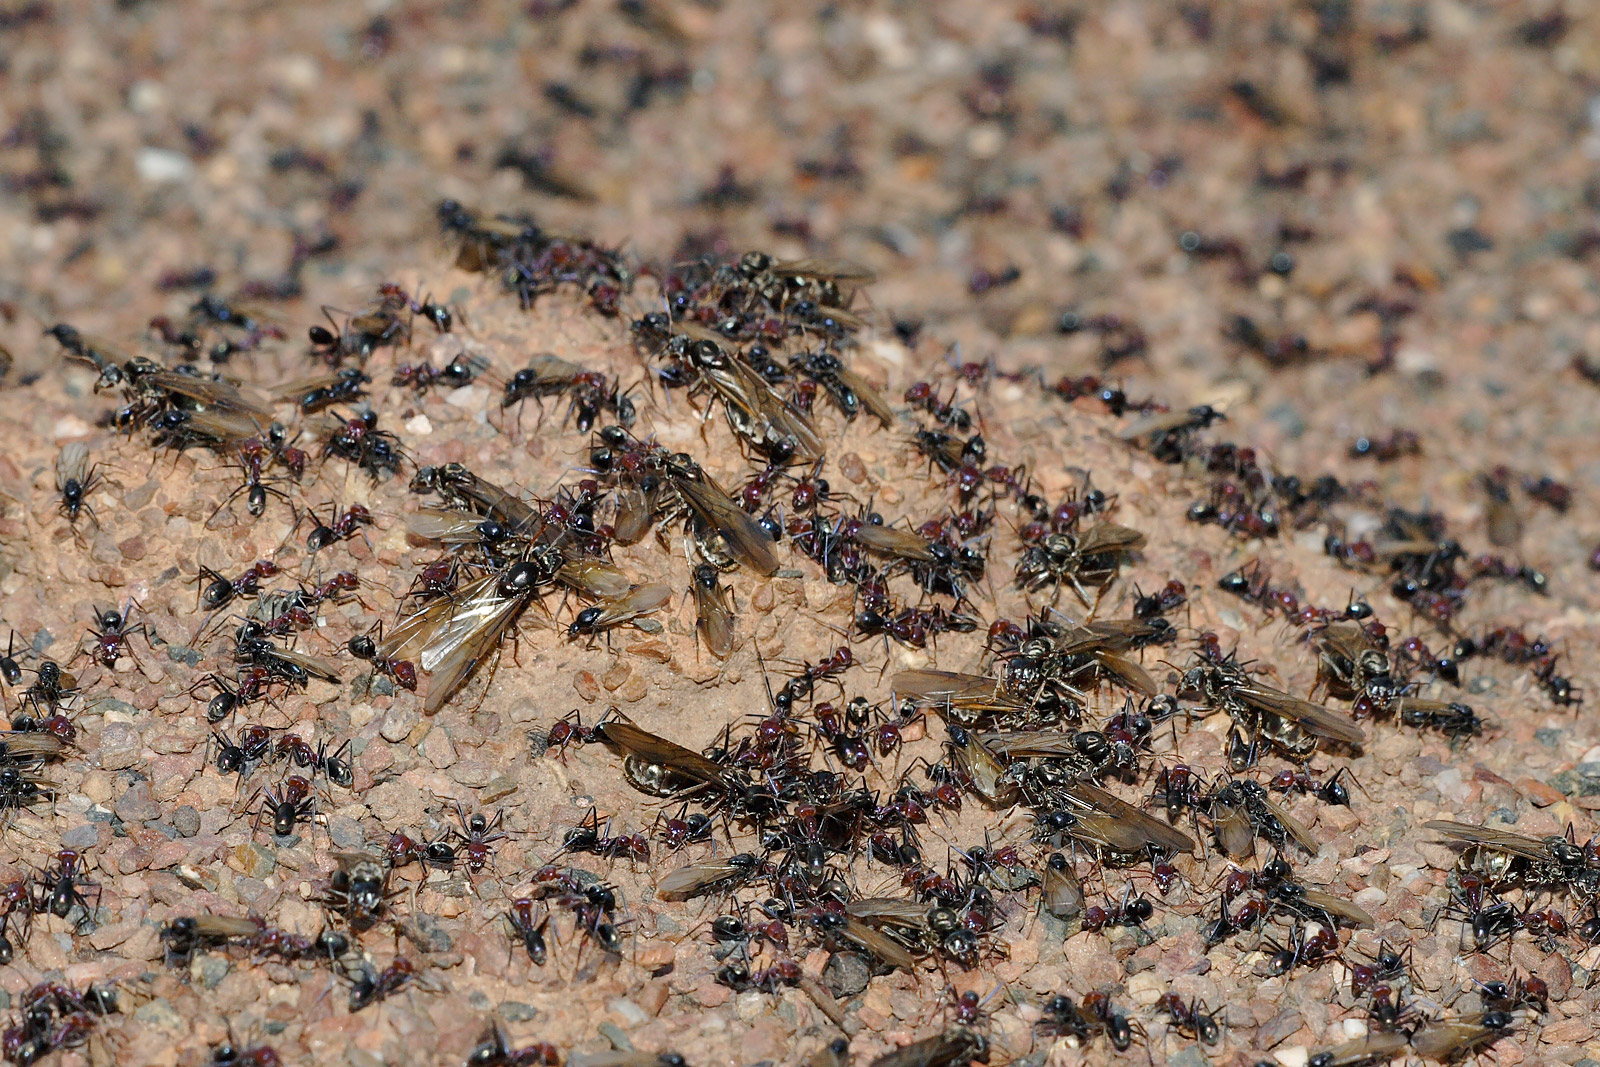 A Swarm Of Locusts - Dislodged